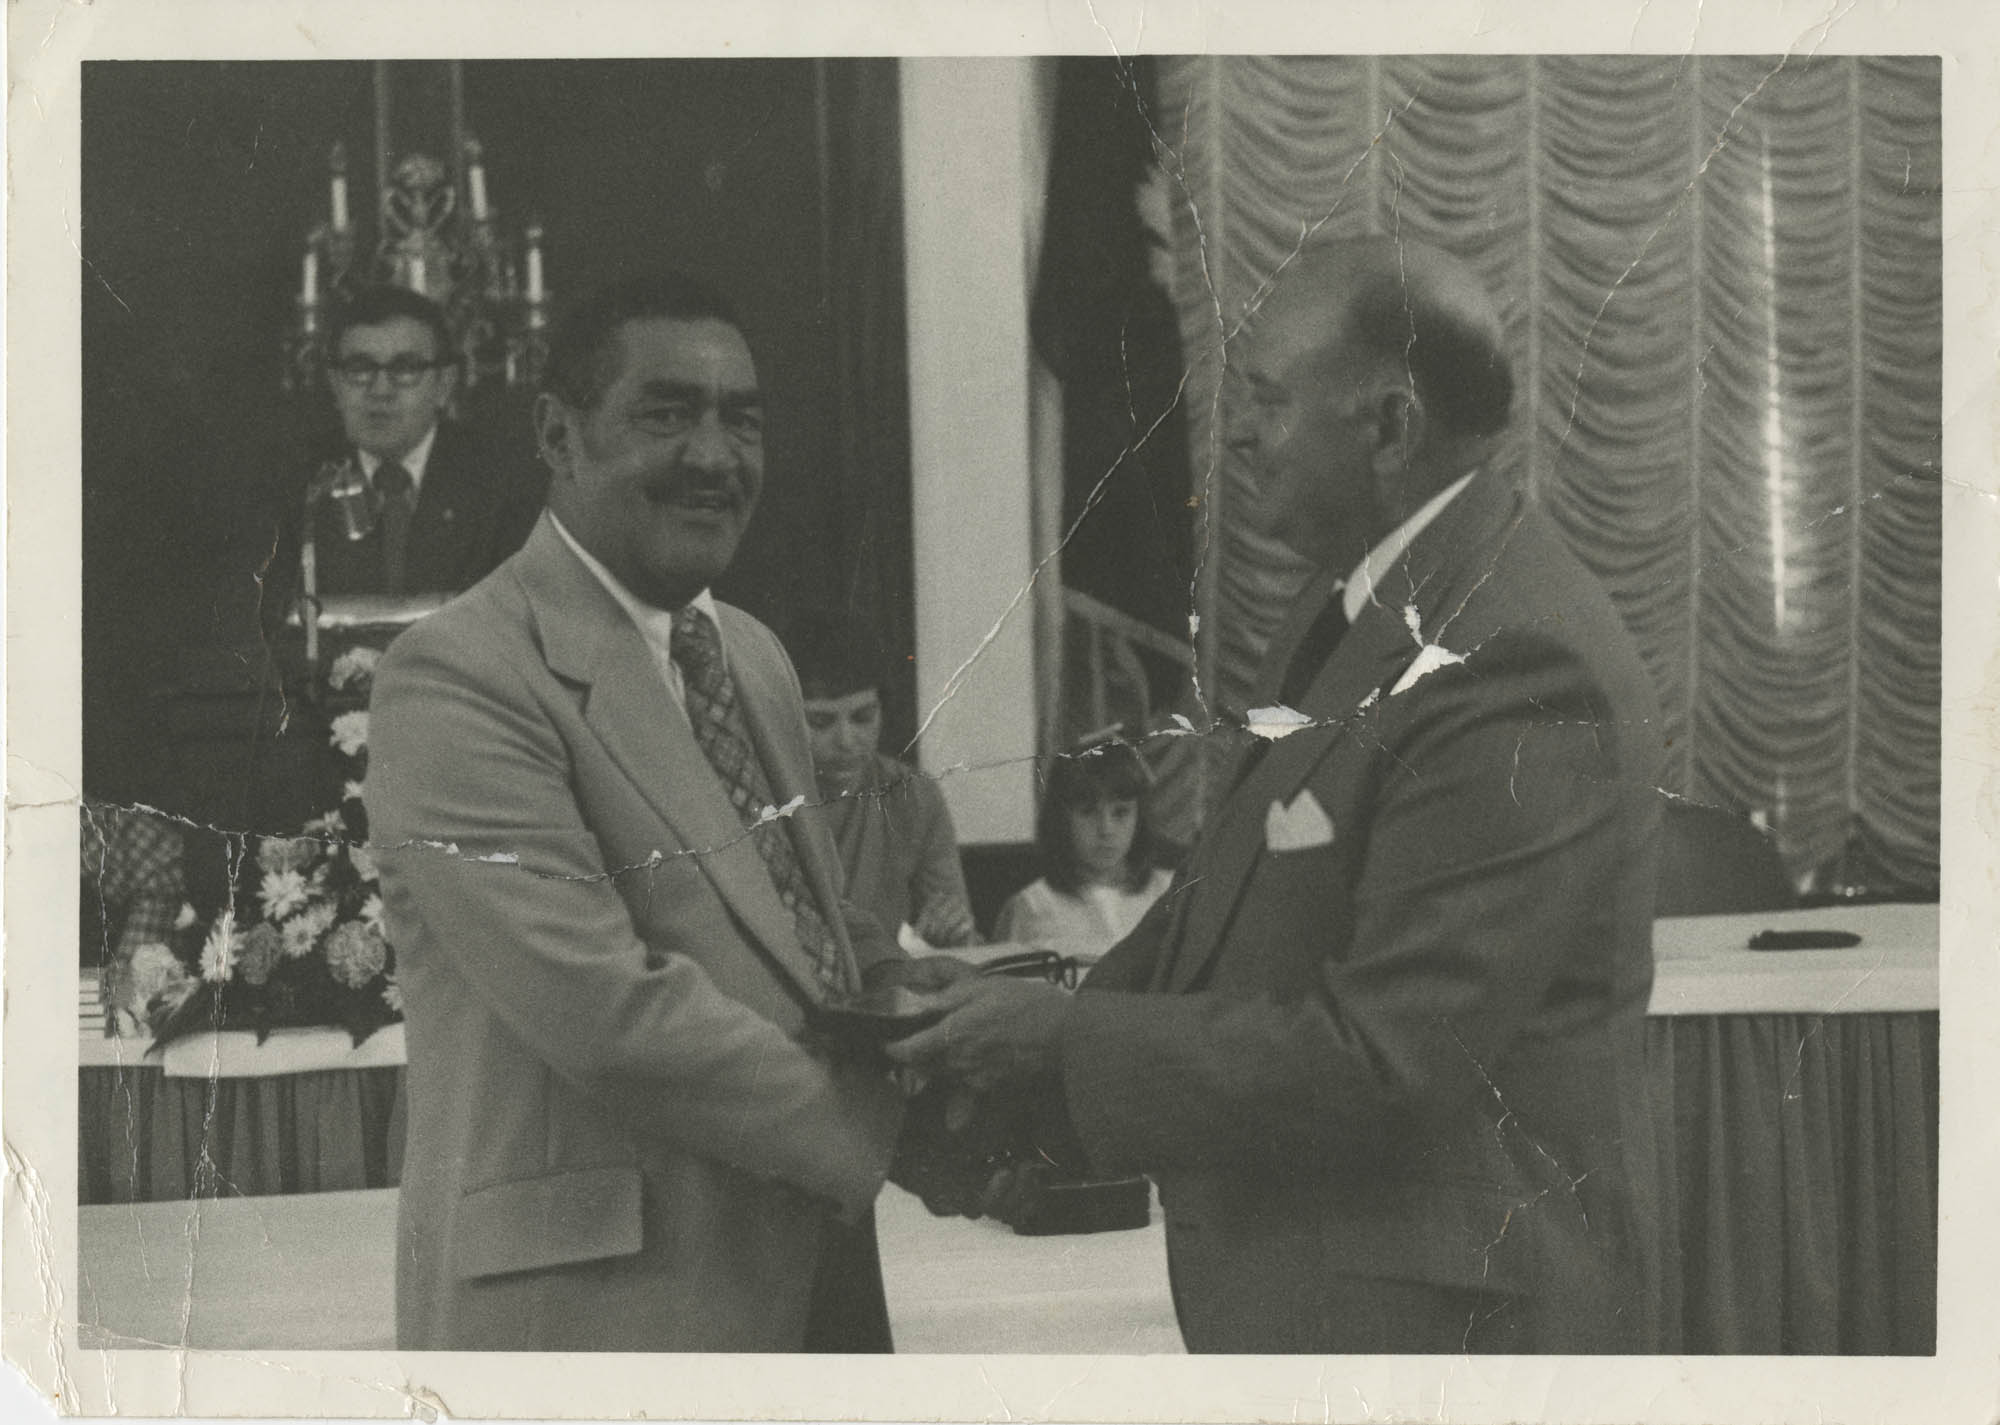 Photograph of J. Arthur Brown Shaking Hands with an Unidentified Man